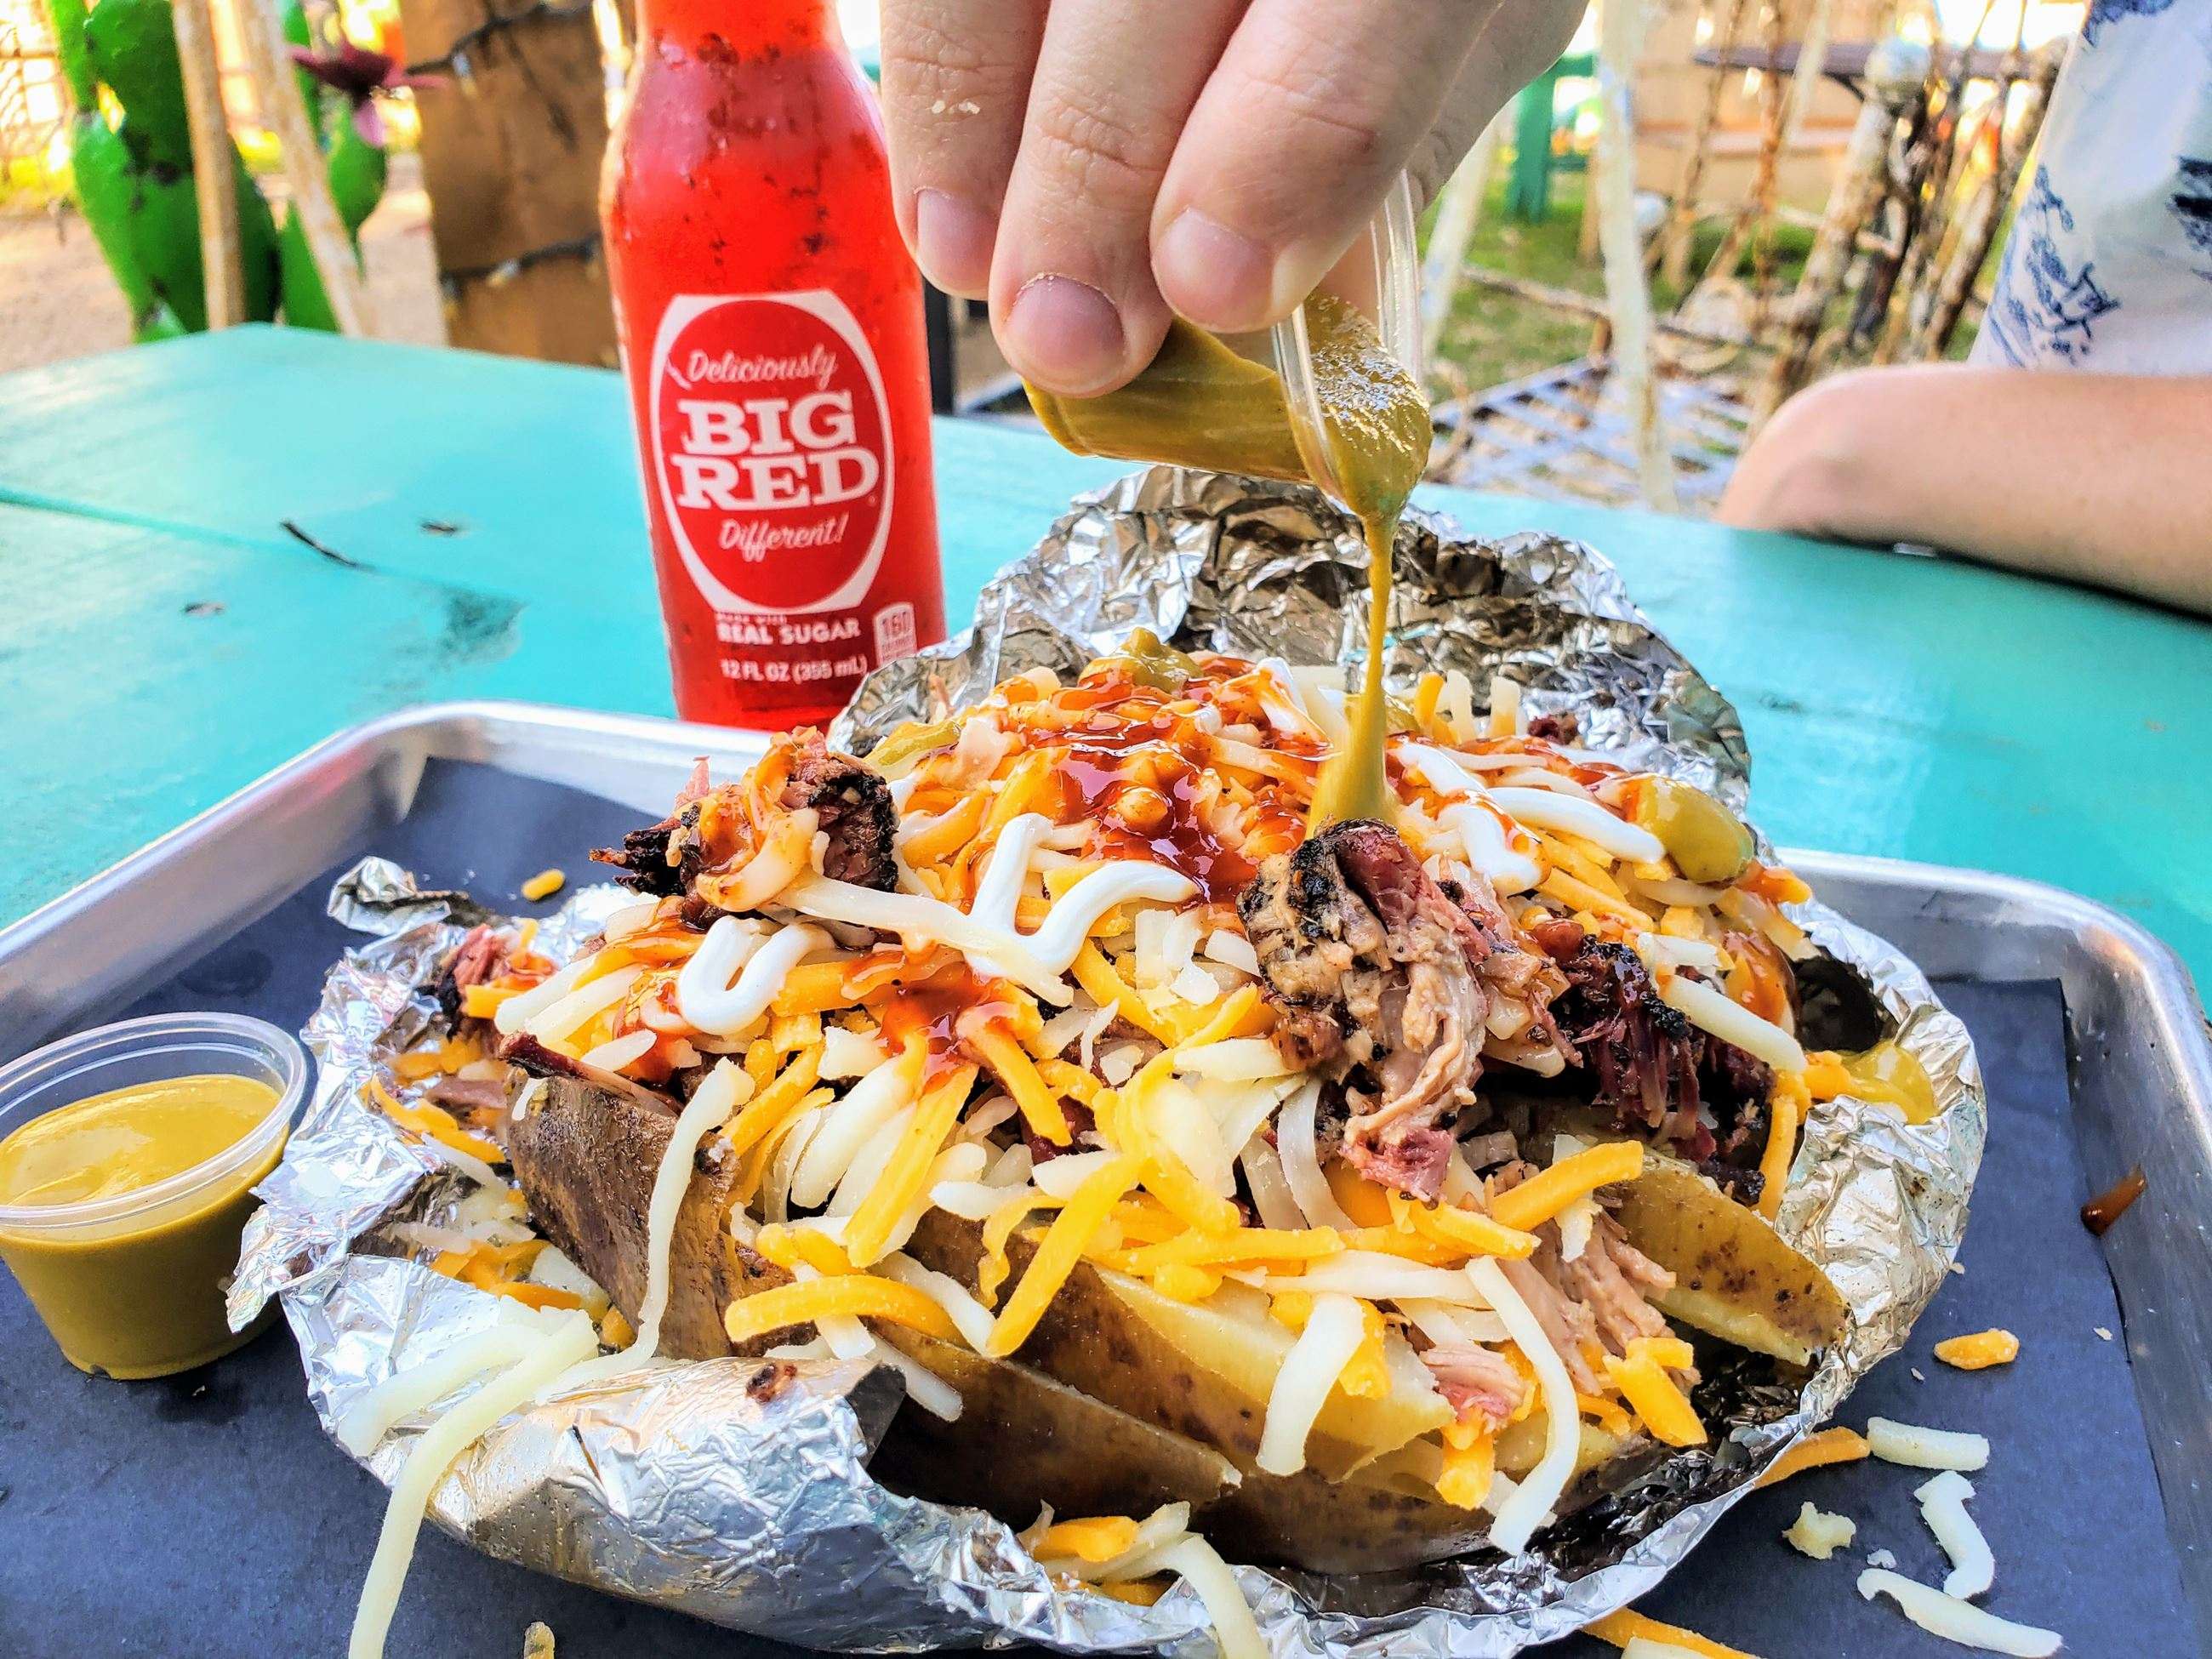 Brisket Baked Potato from Louie's